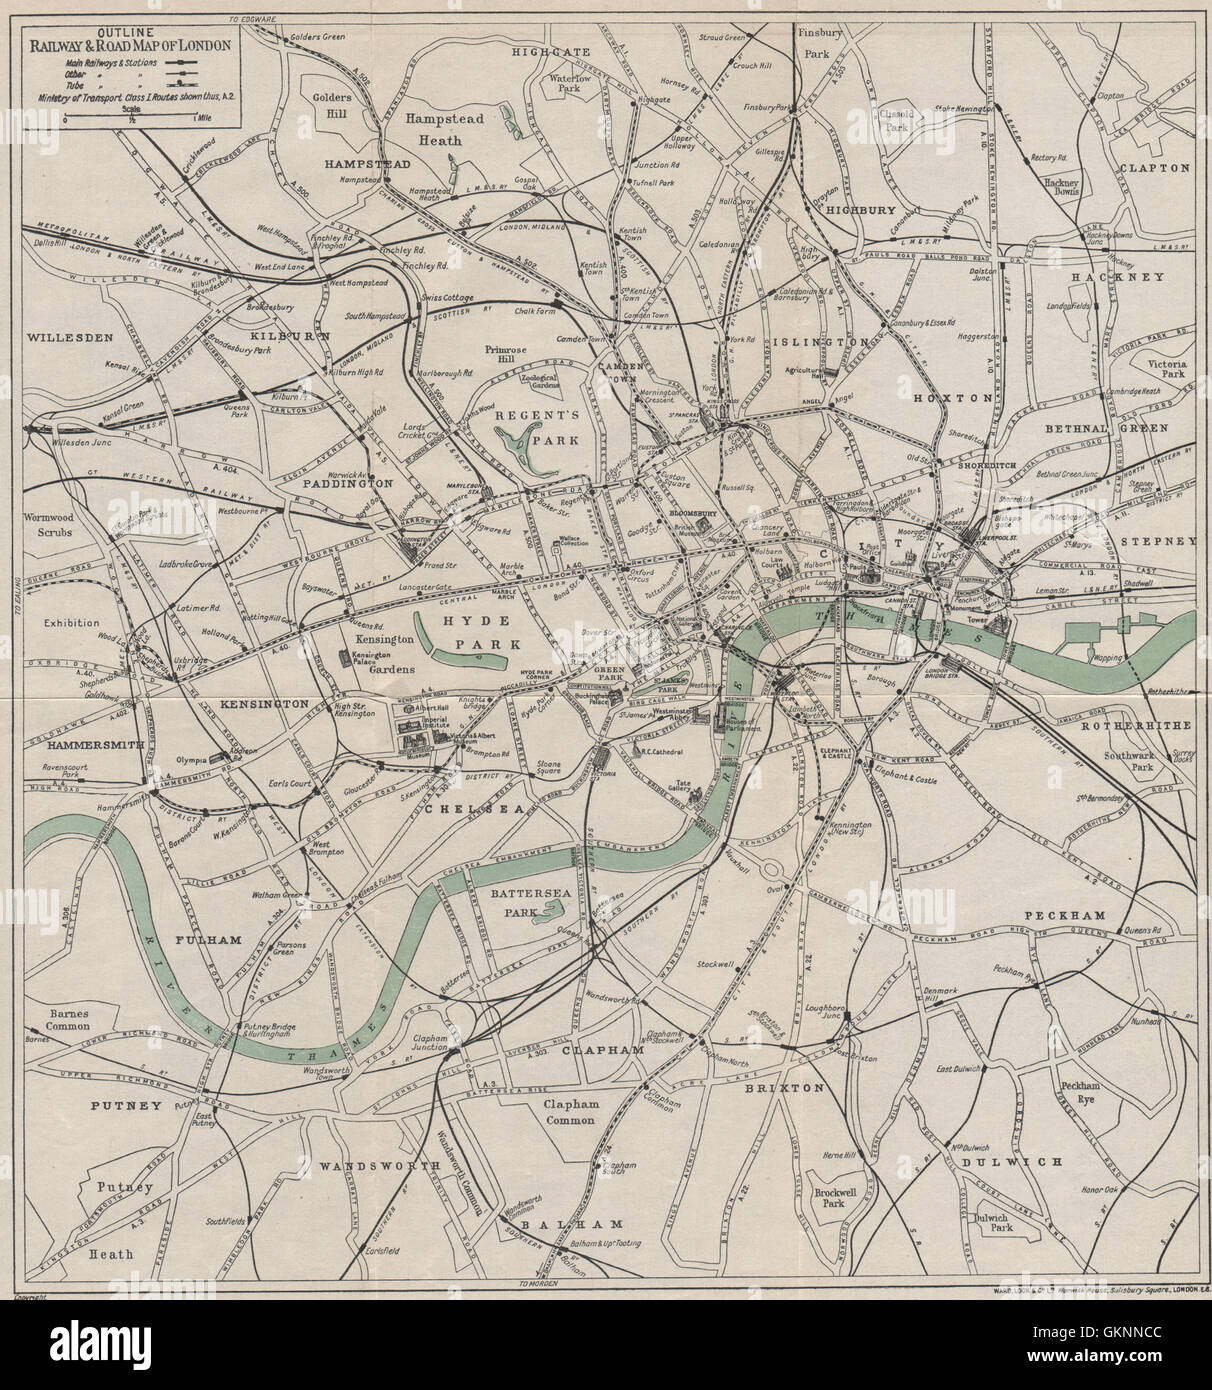 Road Map Central London.Central London Railway Road Map Underground Tube Ward Lock 1930